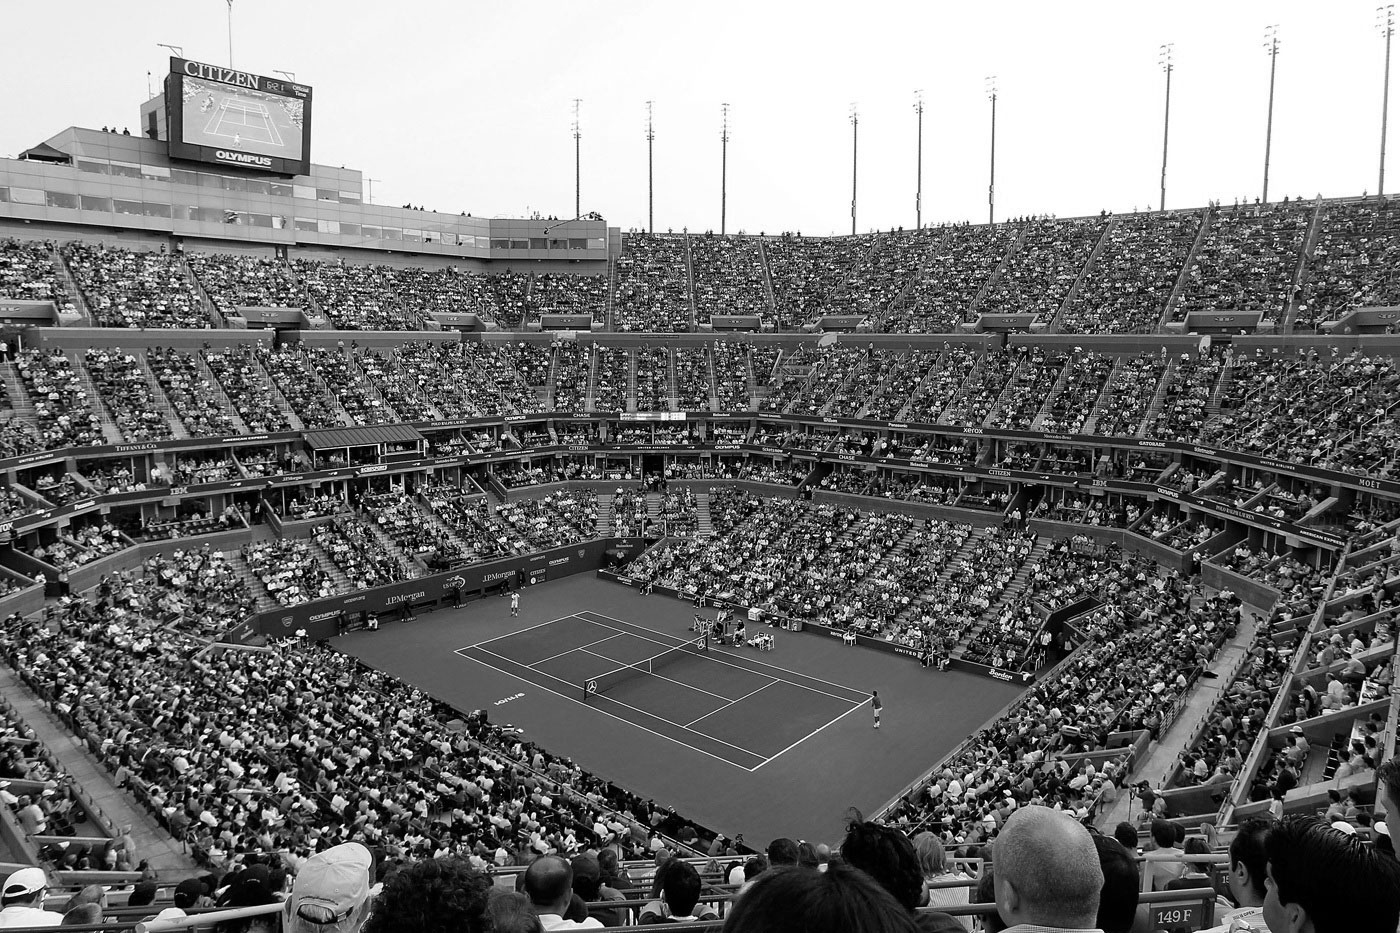 us-open-stadium